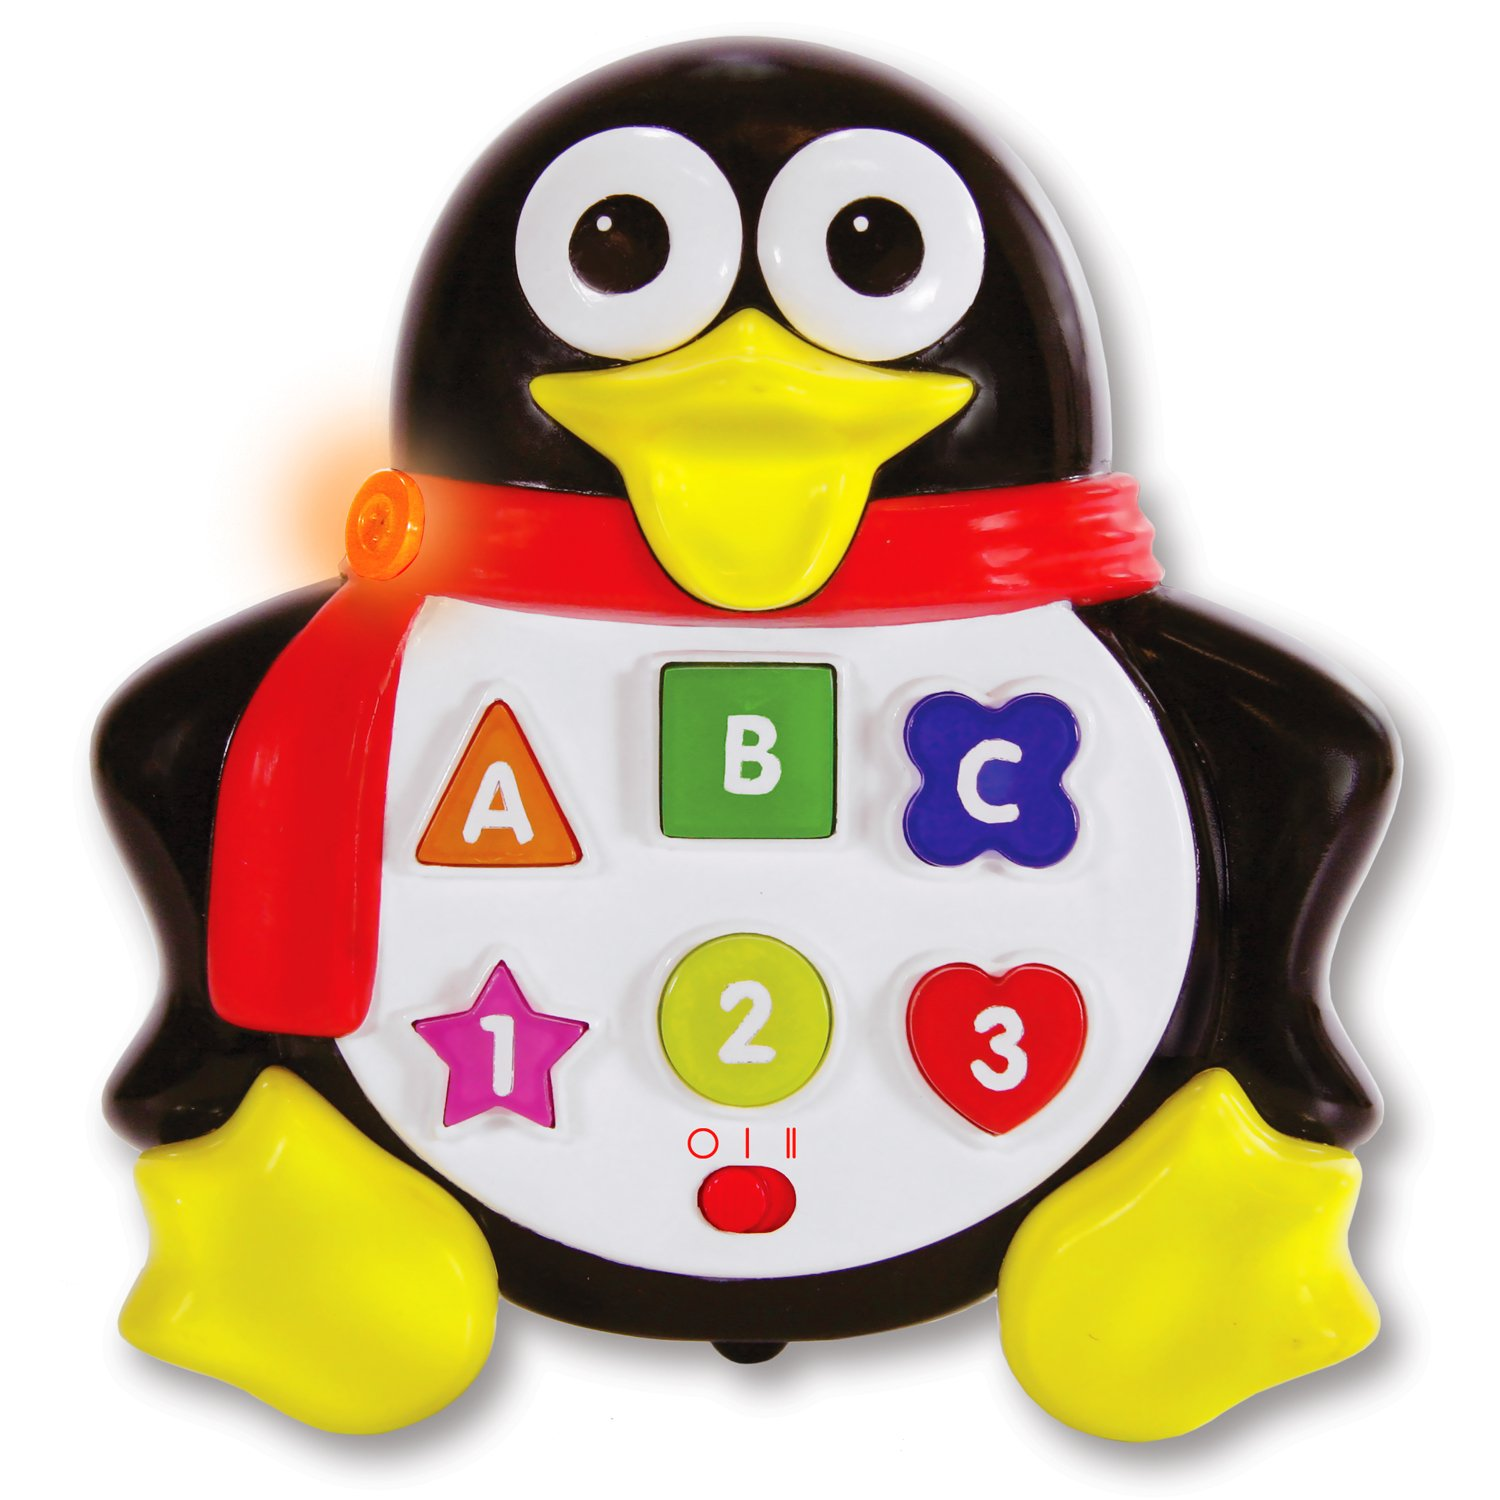 Amazon The Learning Journey Early Learning ABC 123 Penguin